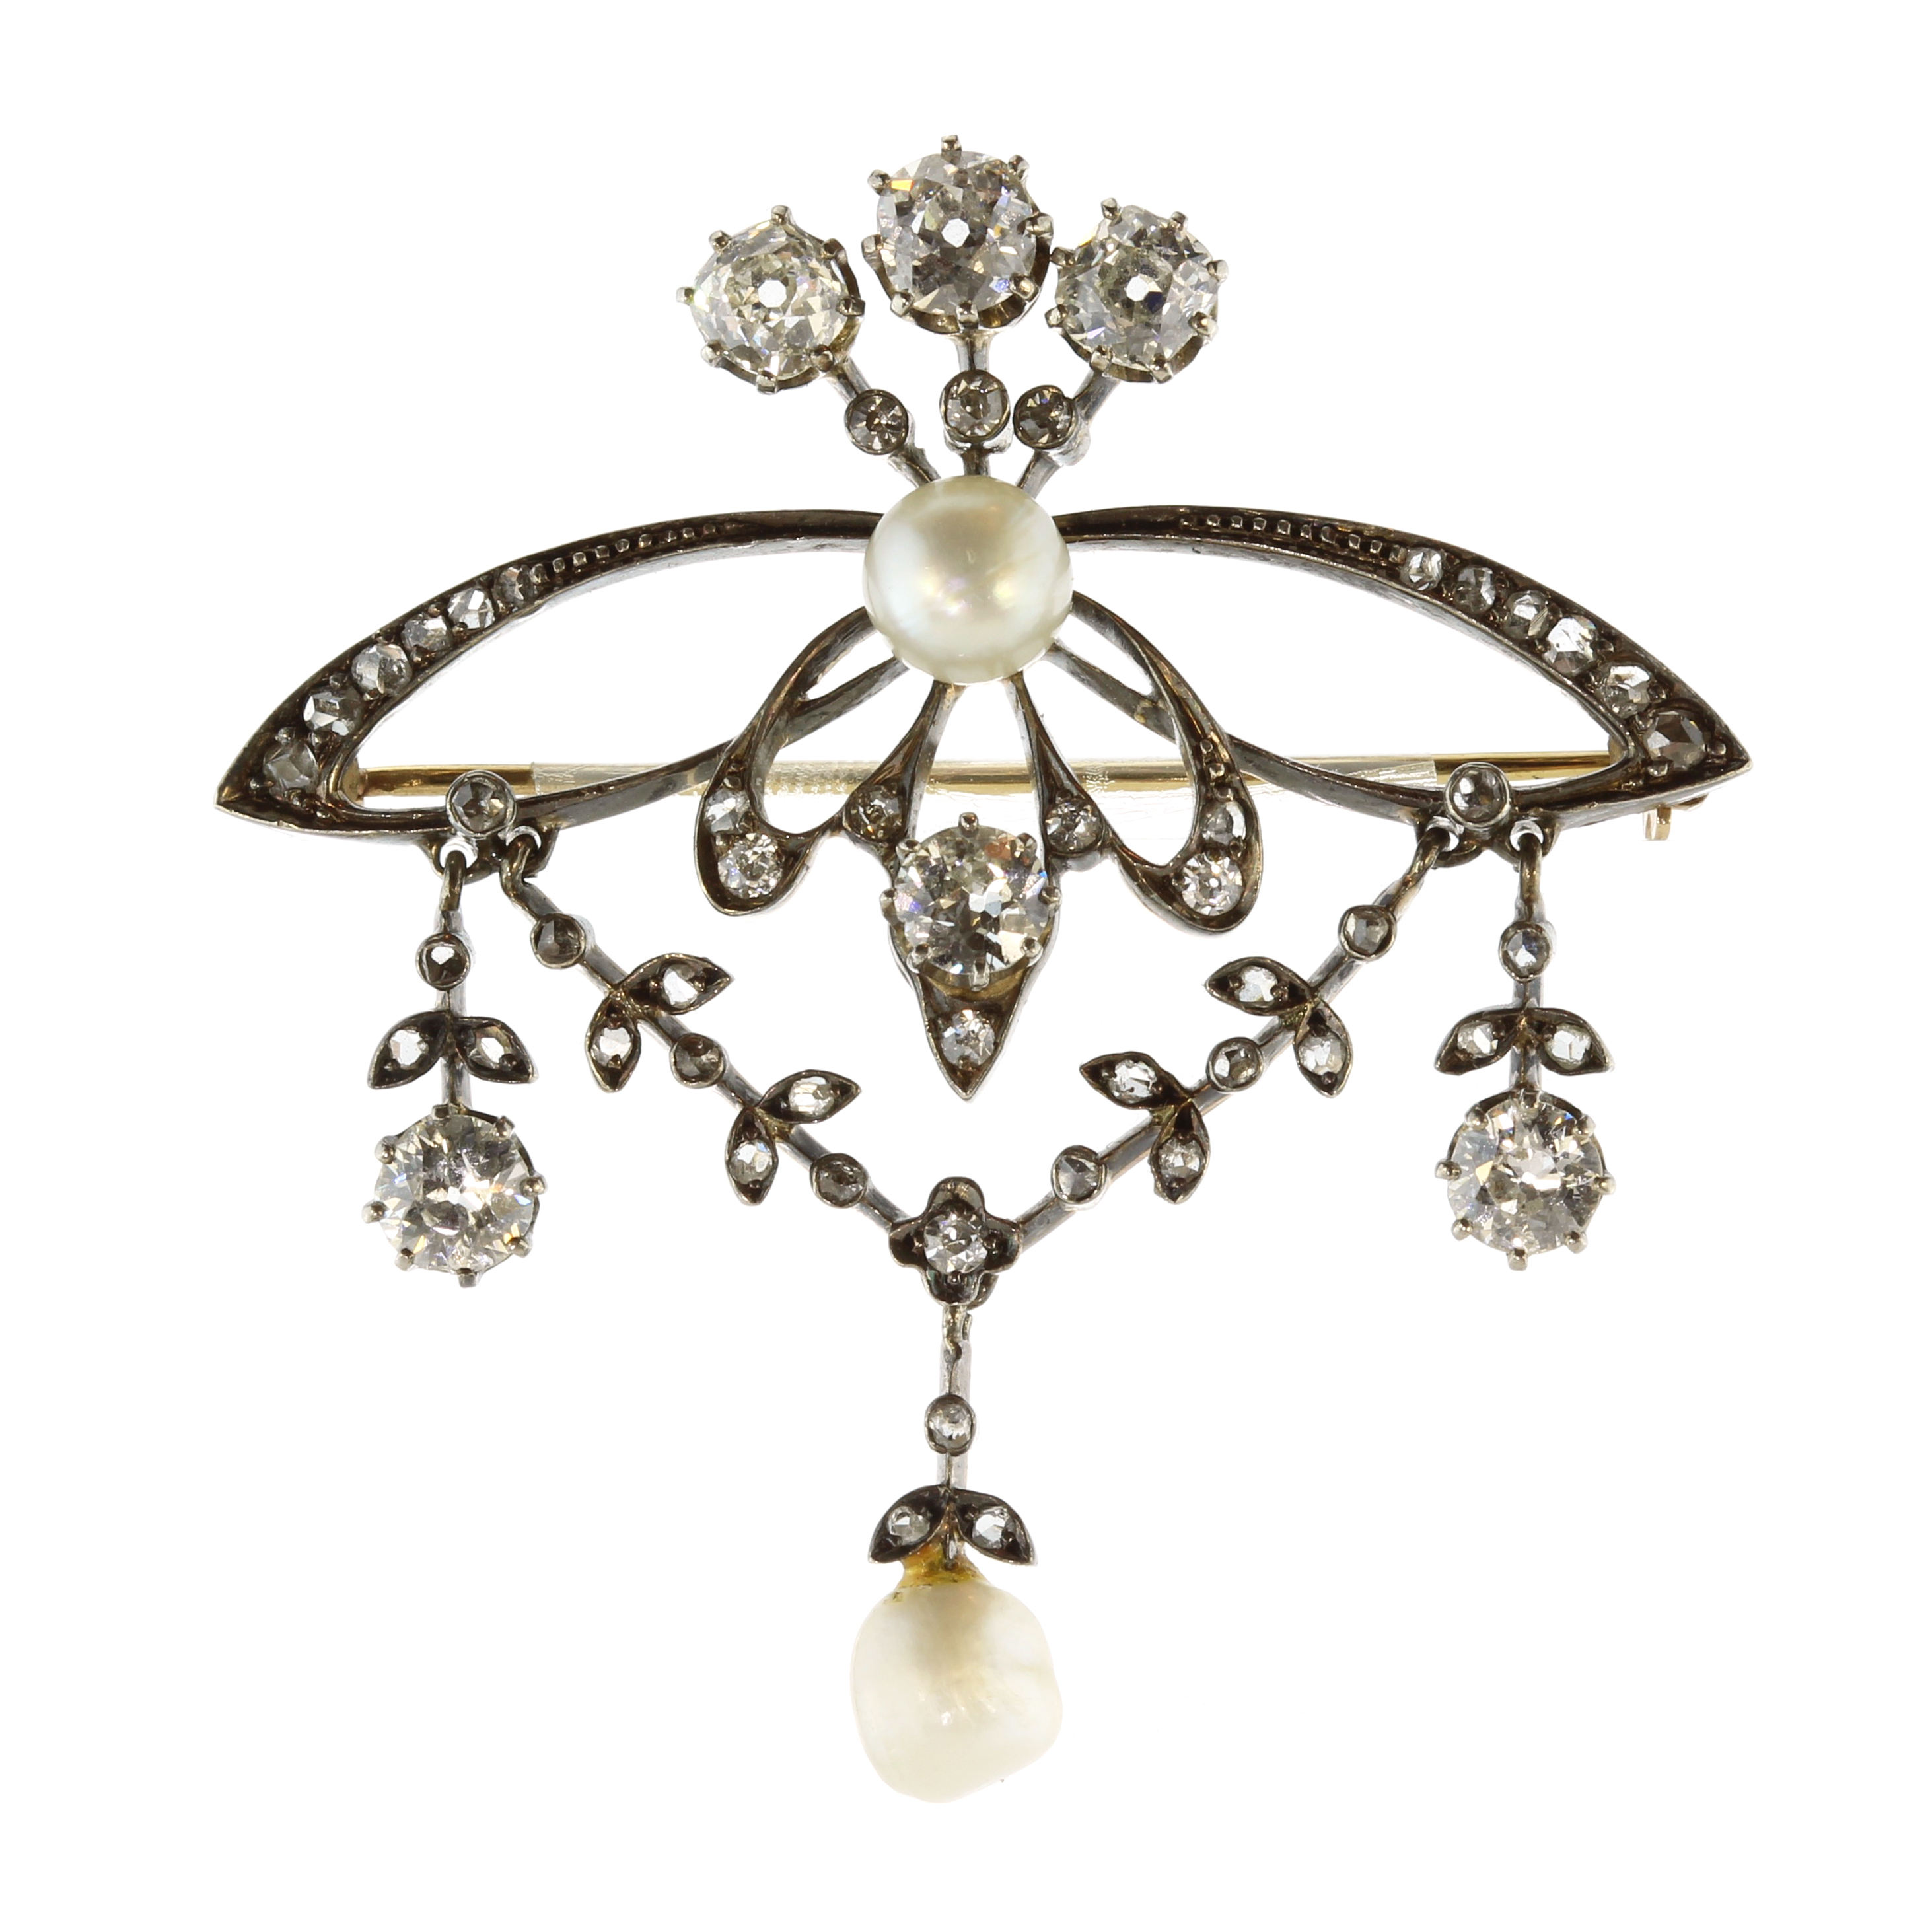 Los 34 - An antique Belle Epoque natural pearl and diamond brooch in gold and silver or platinum, set with